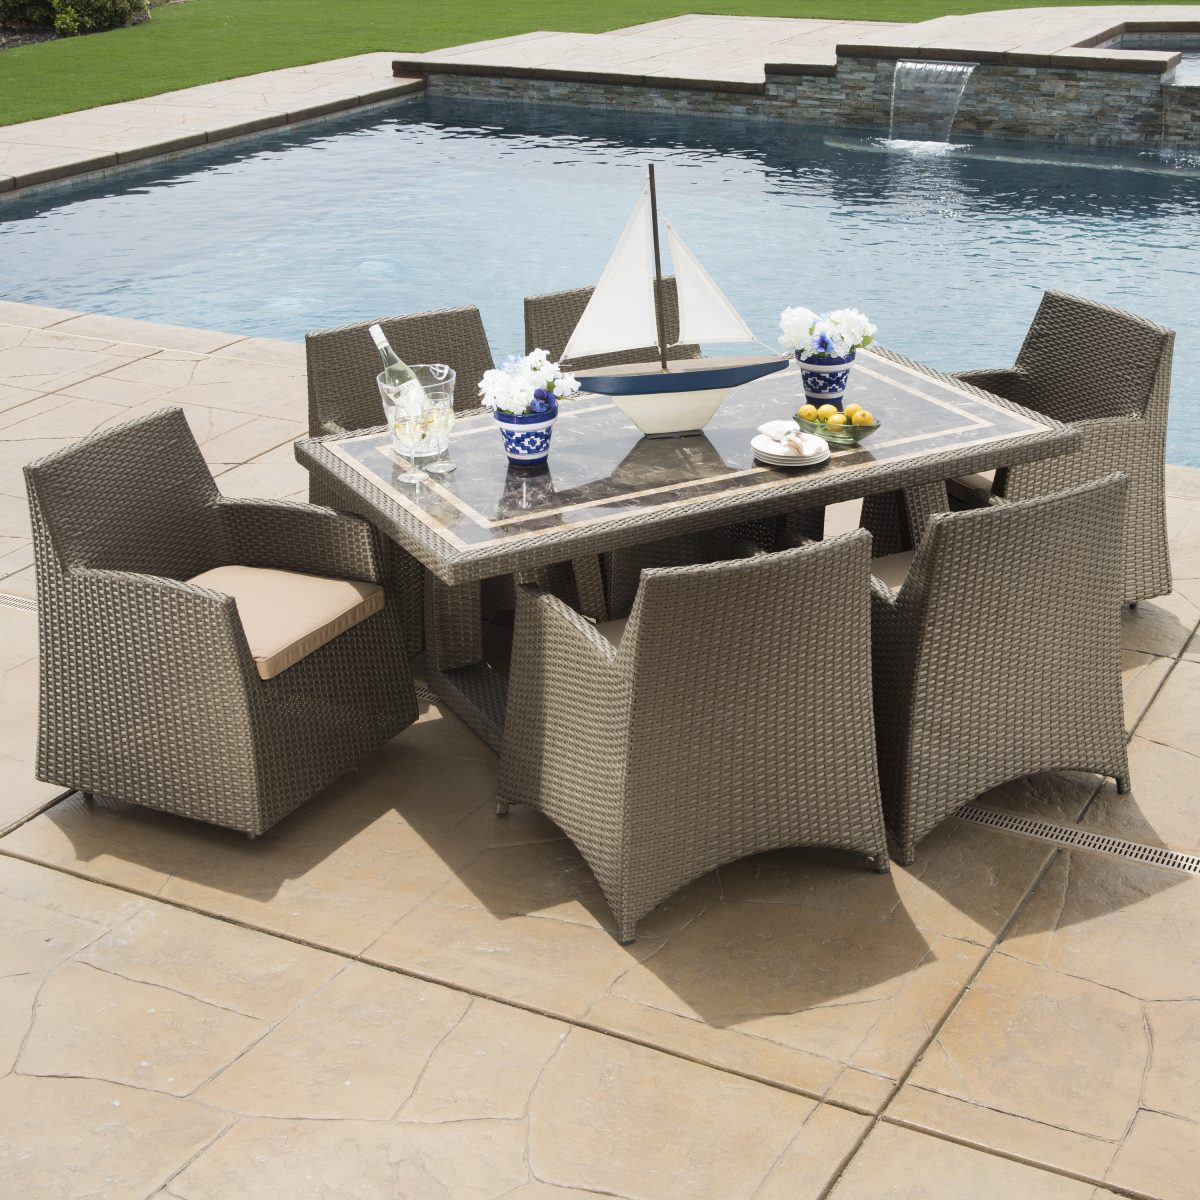 poolside furniture ideas - dining